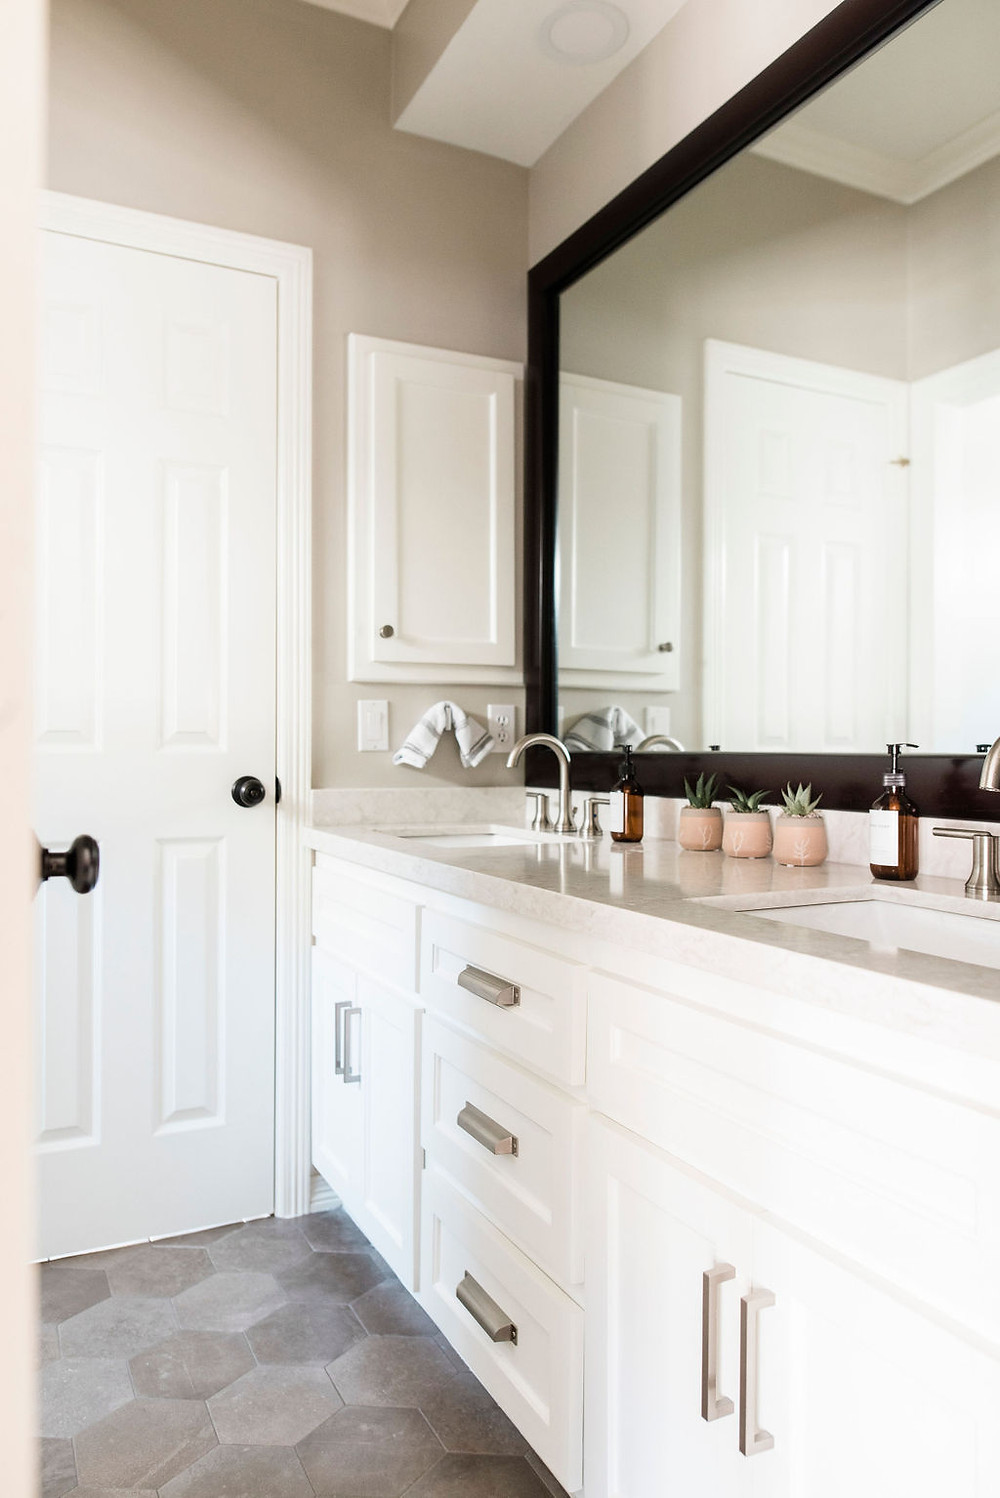 Updated transitional bathroom by Houston interior design firm Nancy Lane Interiors.